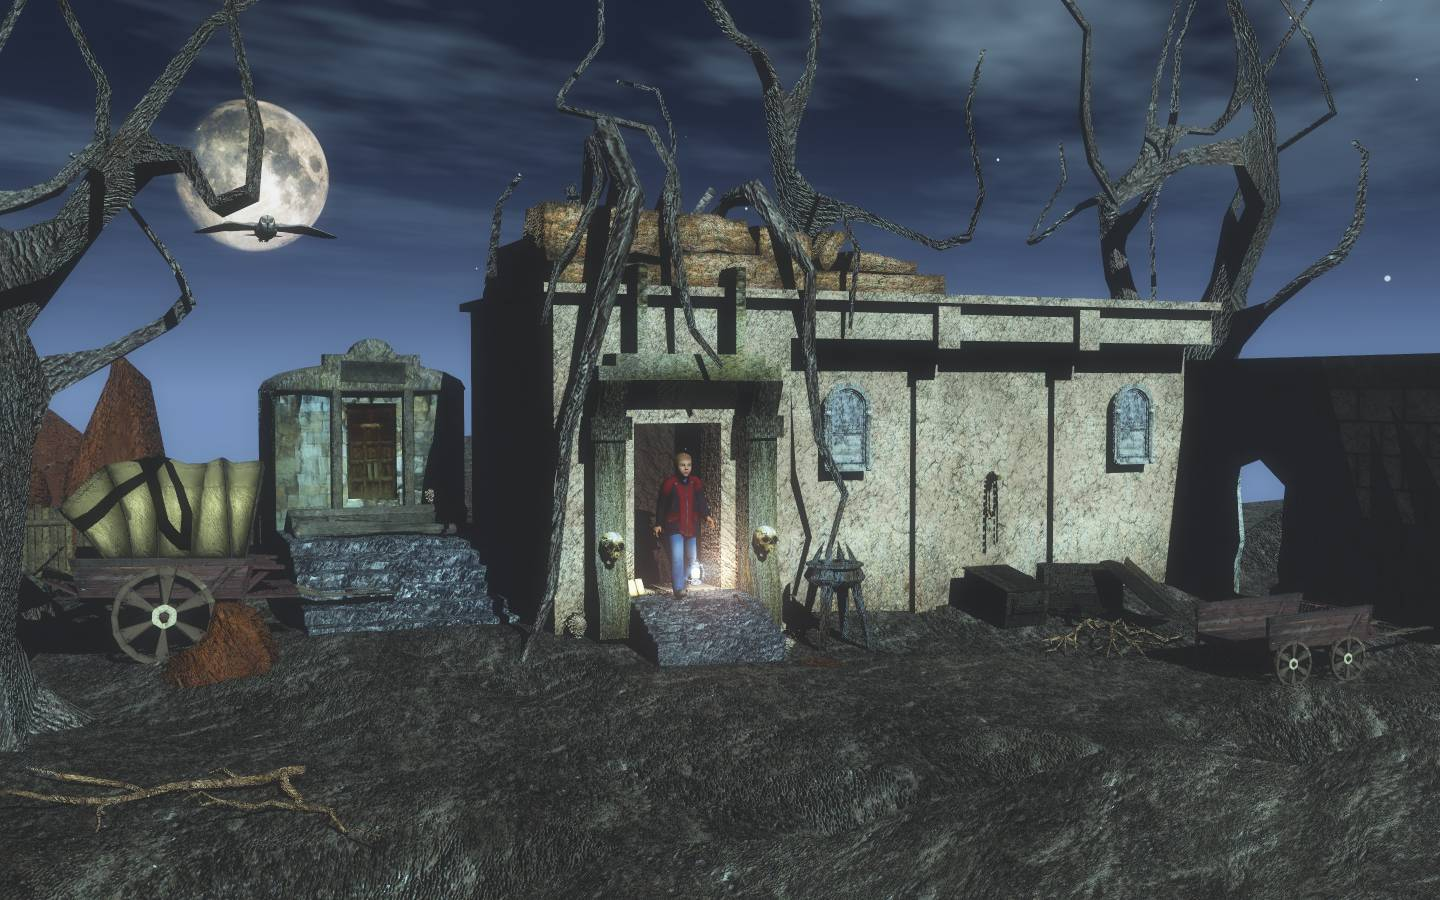 Vincent`s Priceless Moments: Rendered this in Vue Esprit by taking advantage of the Derelict Temple Set in Vue Esprit and the Moonlight Atmosphere and Eon